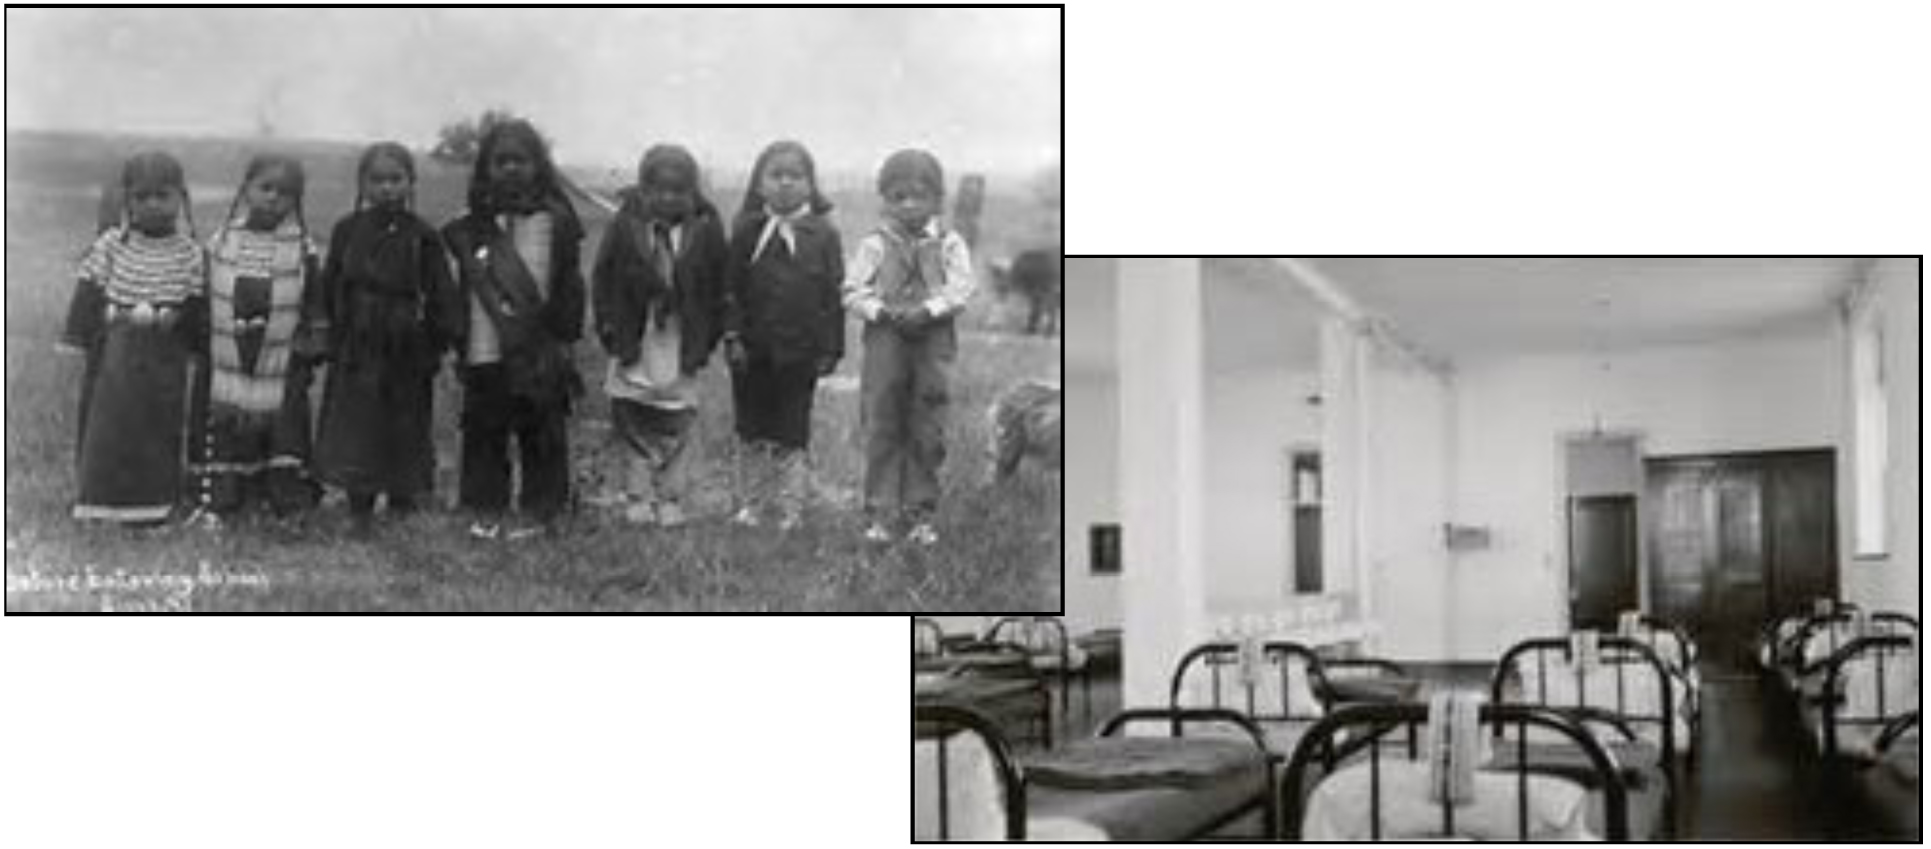 Soon to go to school / Dormitory —images from Indian boarding schools